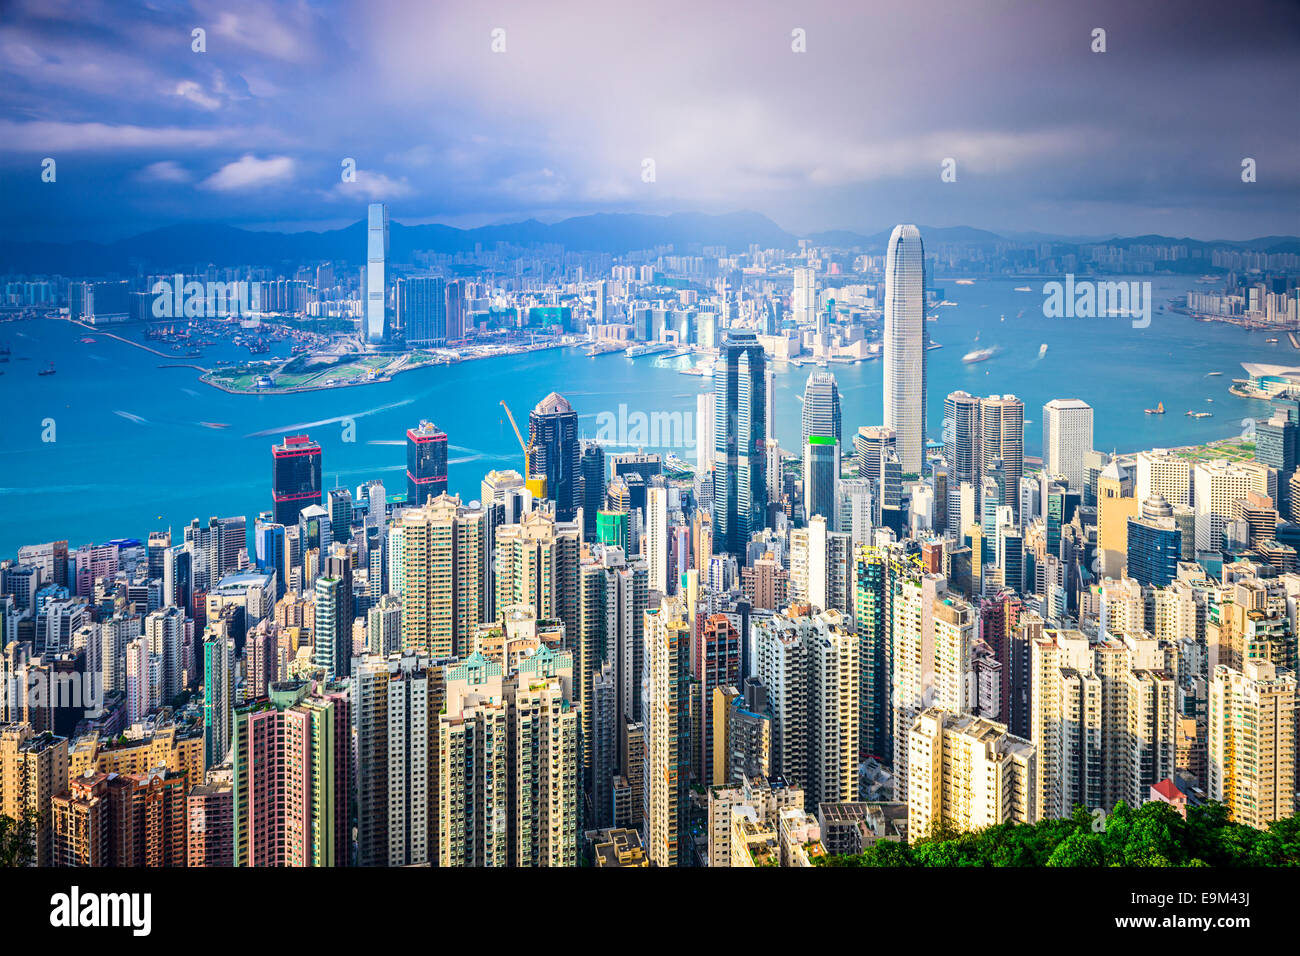 Hong Kong, China city skyline from the Peak. Stock Photo